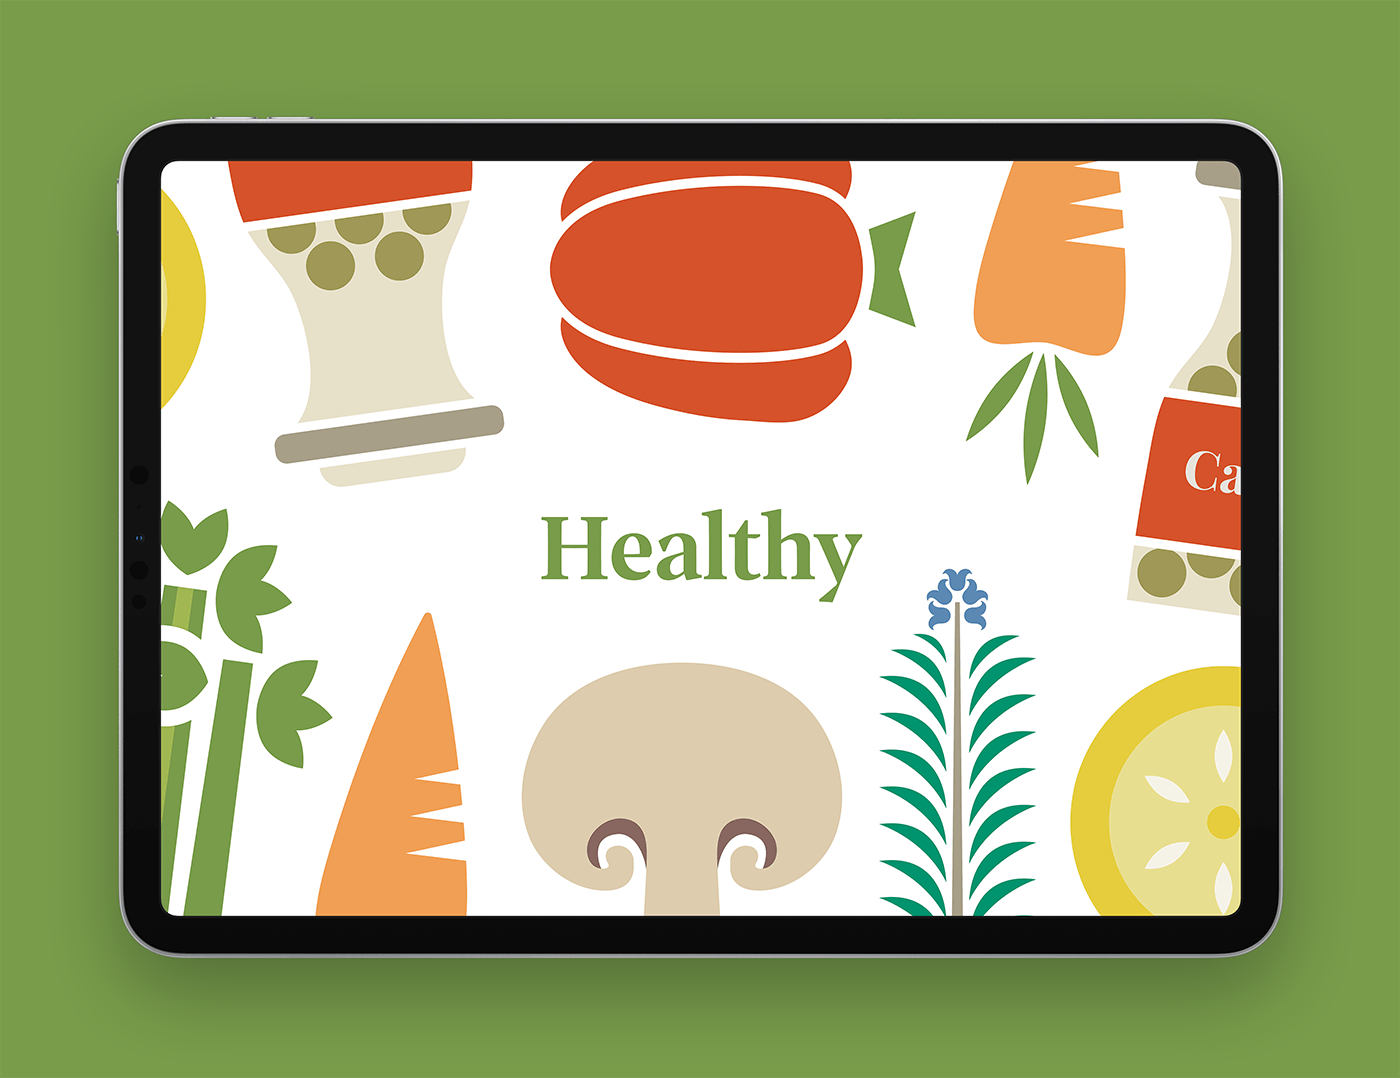 Cookbook page shown on an iPad screen, with the word 'Healthy' surrounded by illustrations of different healthy foods